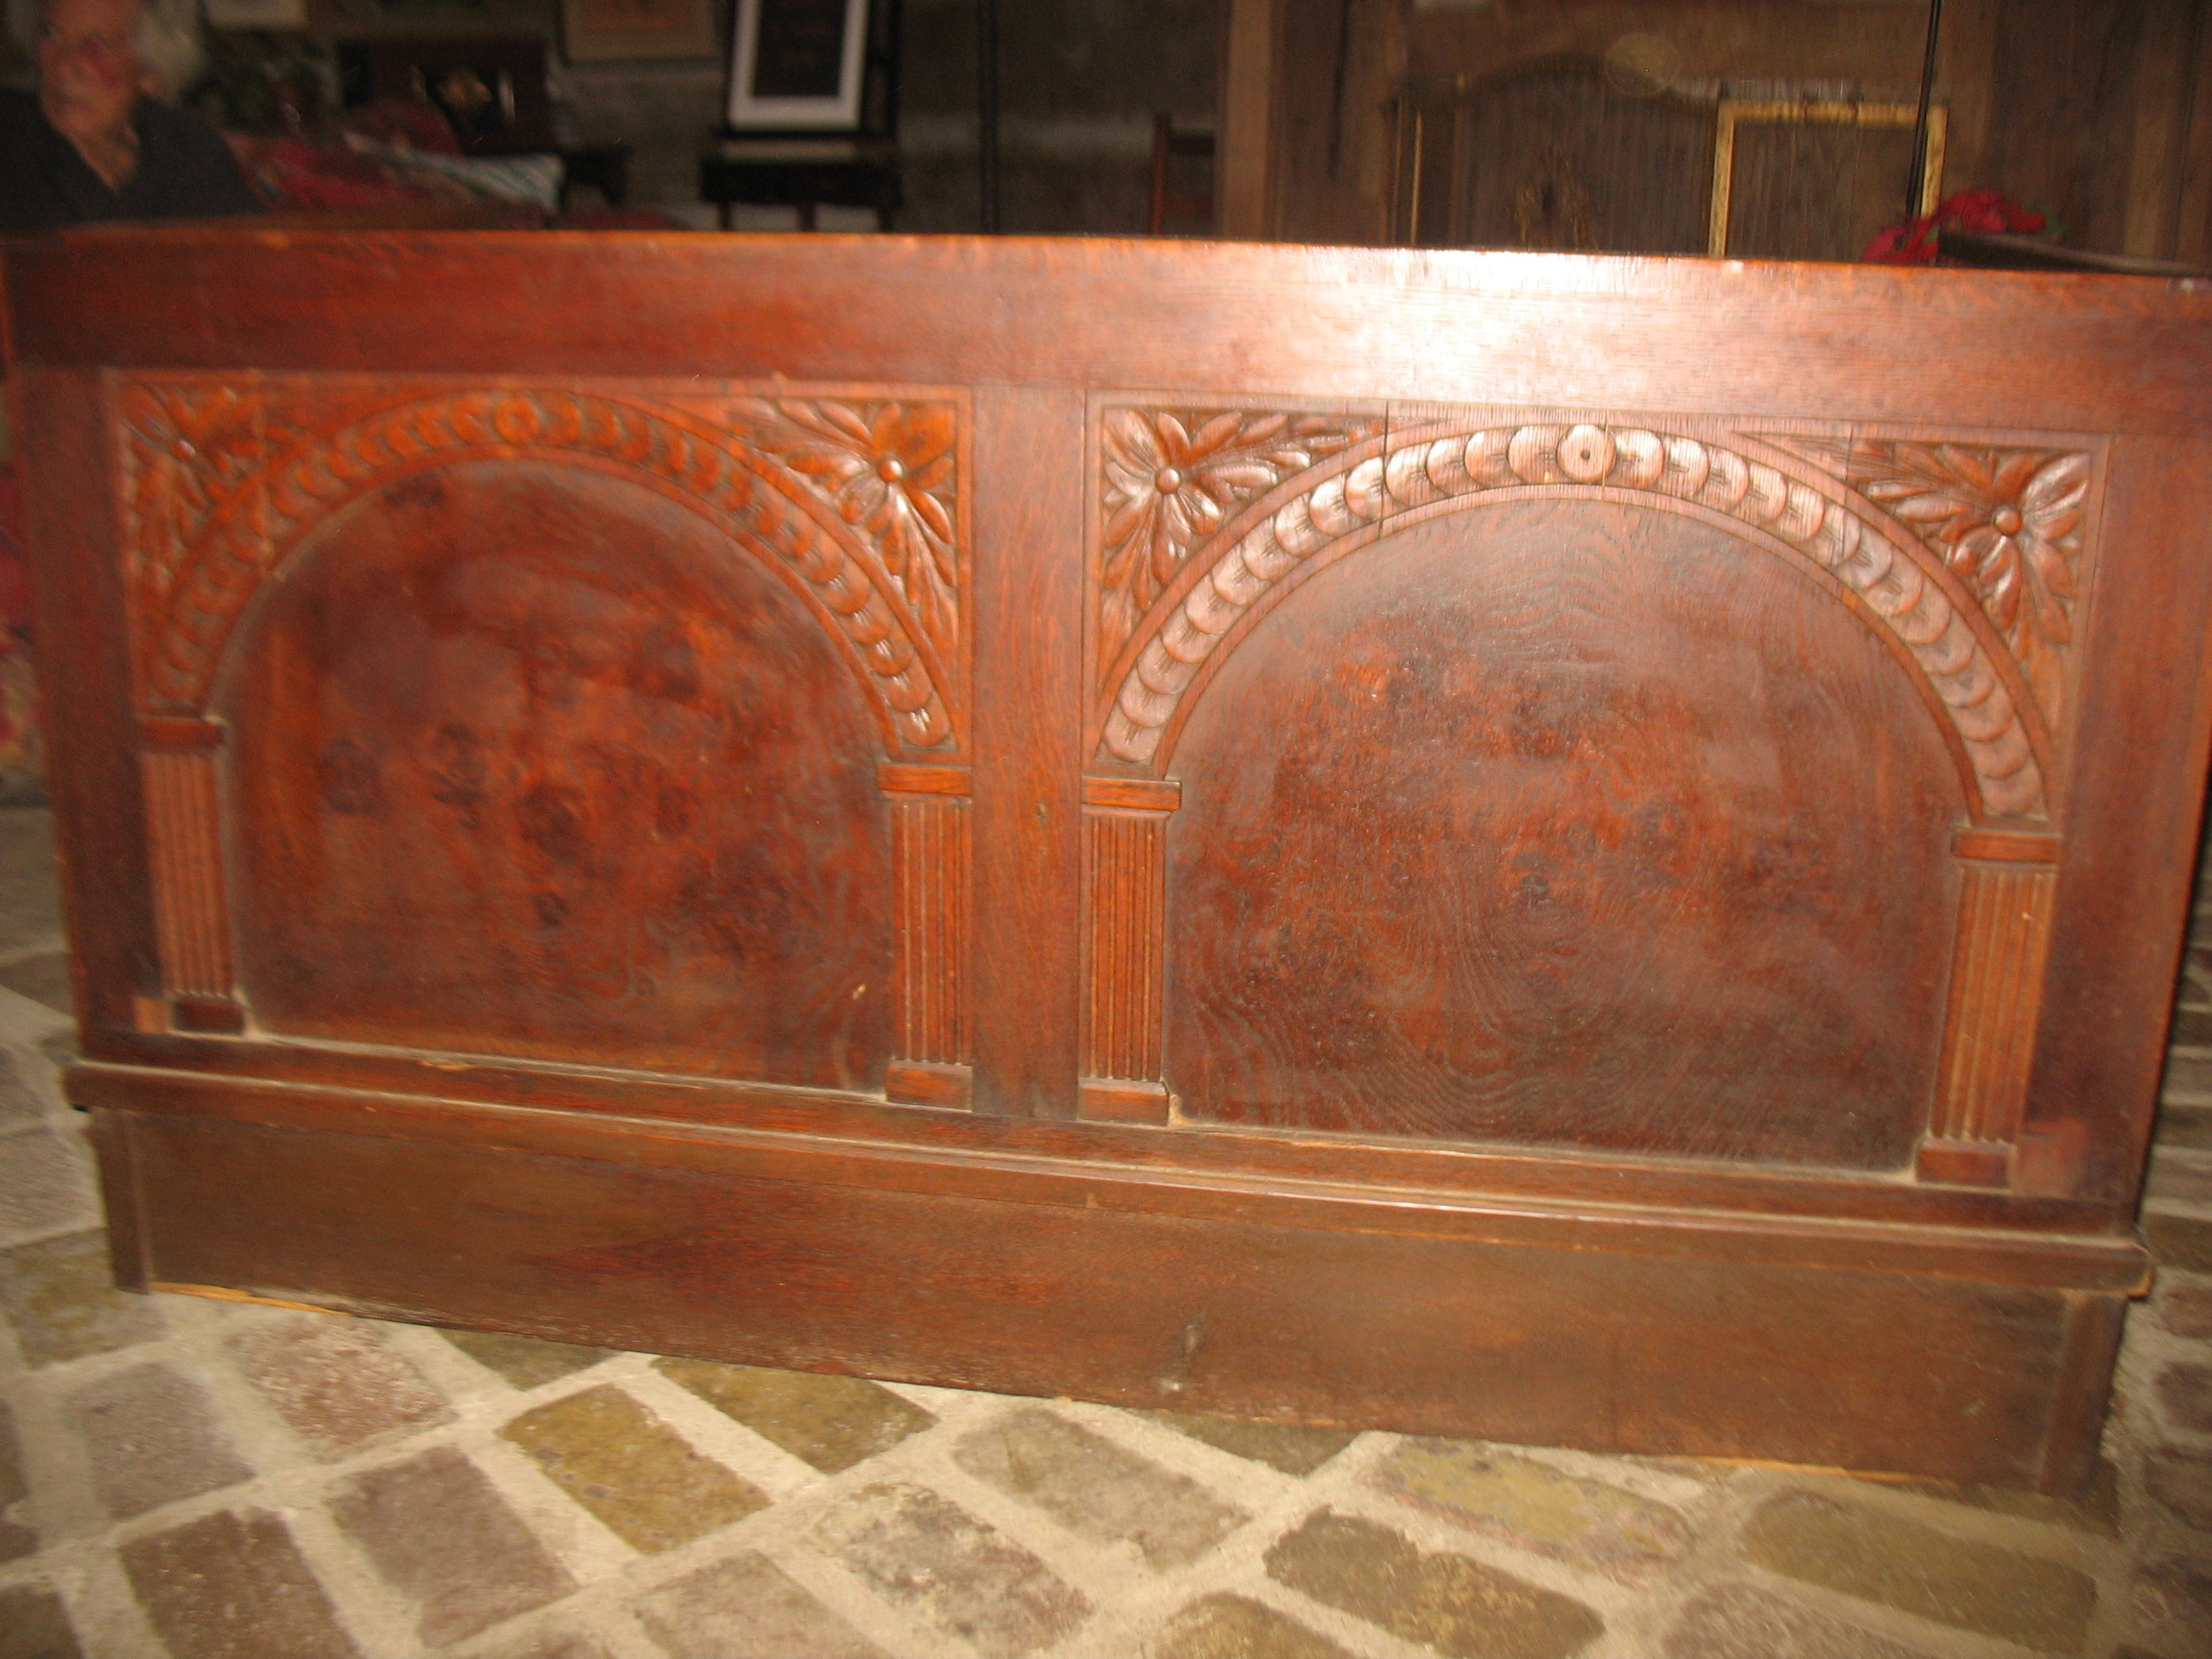 This shows the back and the elaborate oakcarving of the settee.